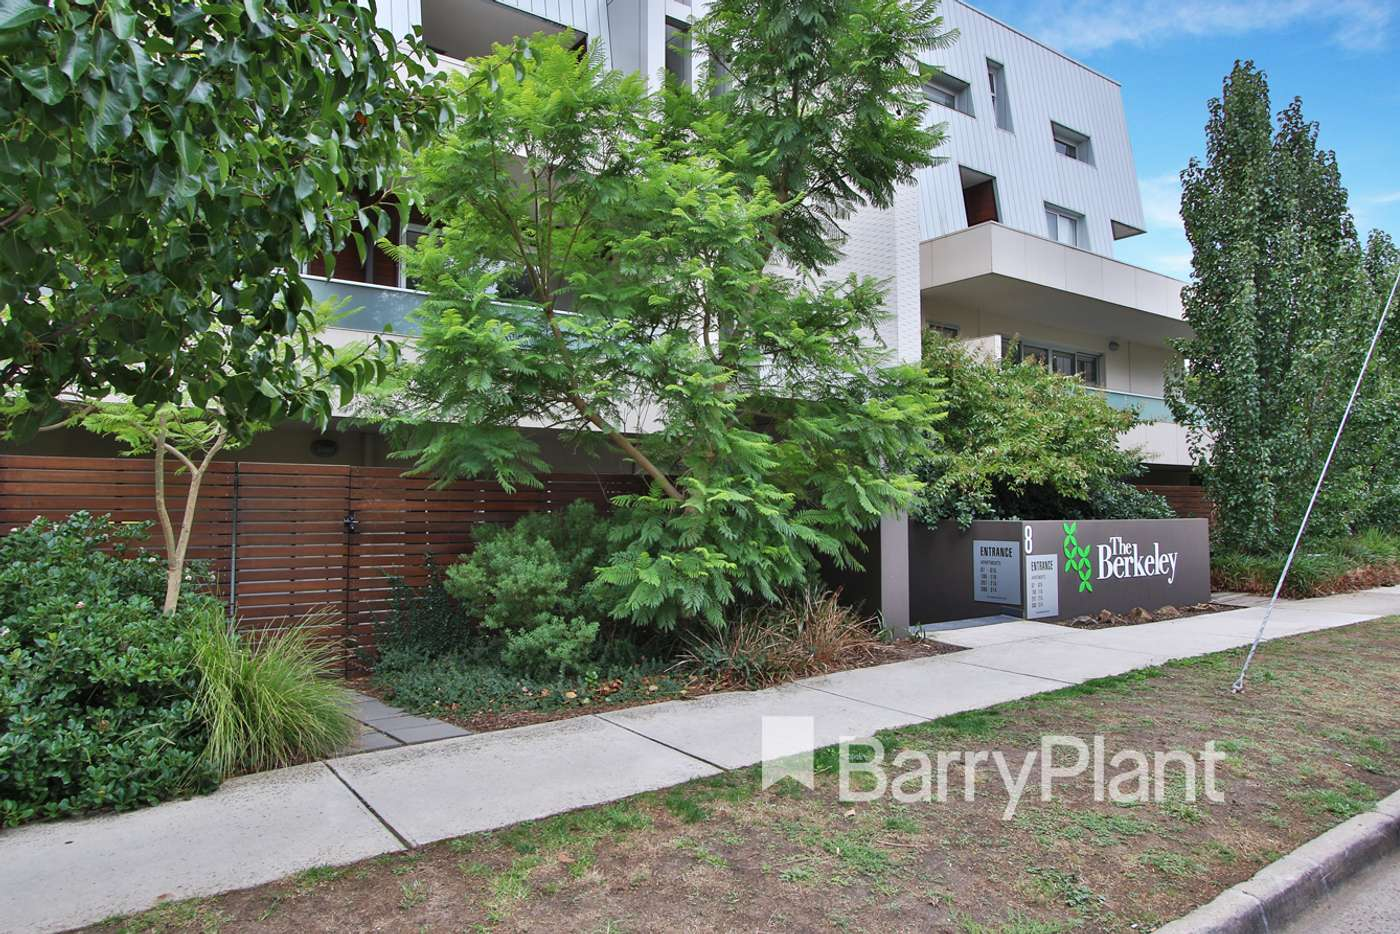 Main view of Homely apartment listing, 214/8 Berkeley Street, Doncaster VIC 3108